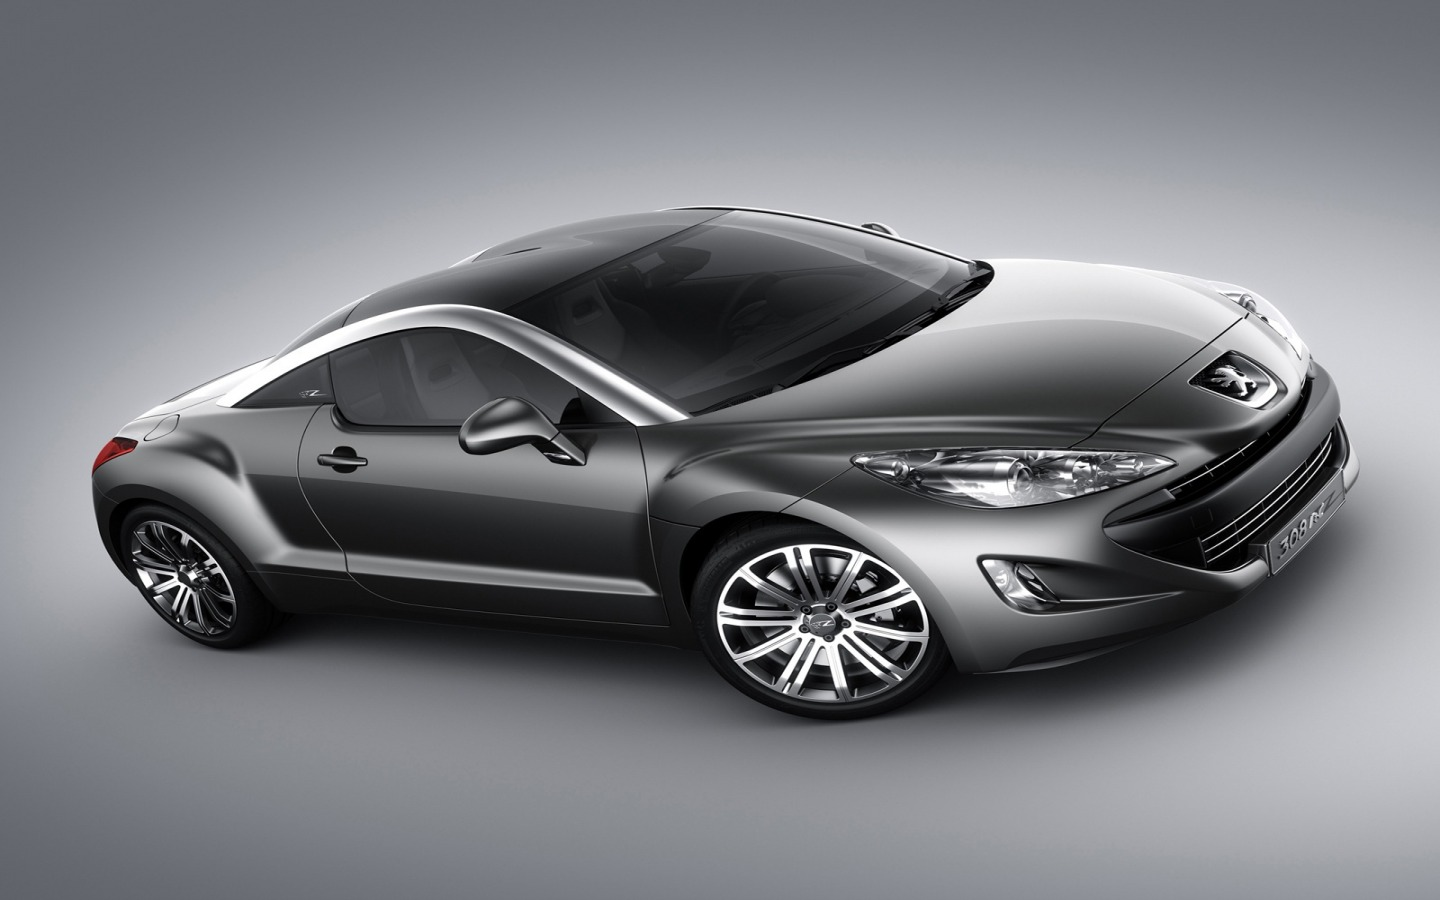 peugeot 308 rcz side and front wallpaper peugeot cars. Black Bedroom Furniture Sets. Home Design Ideas